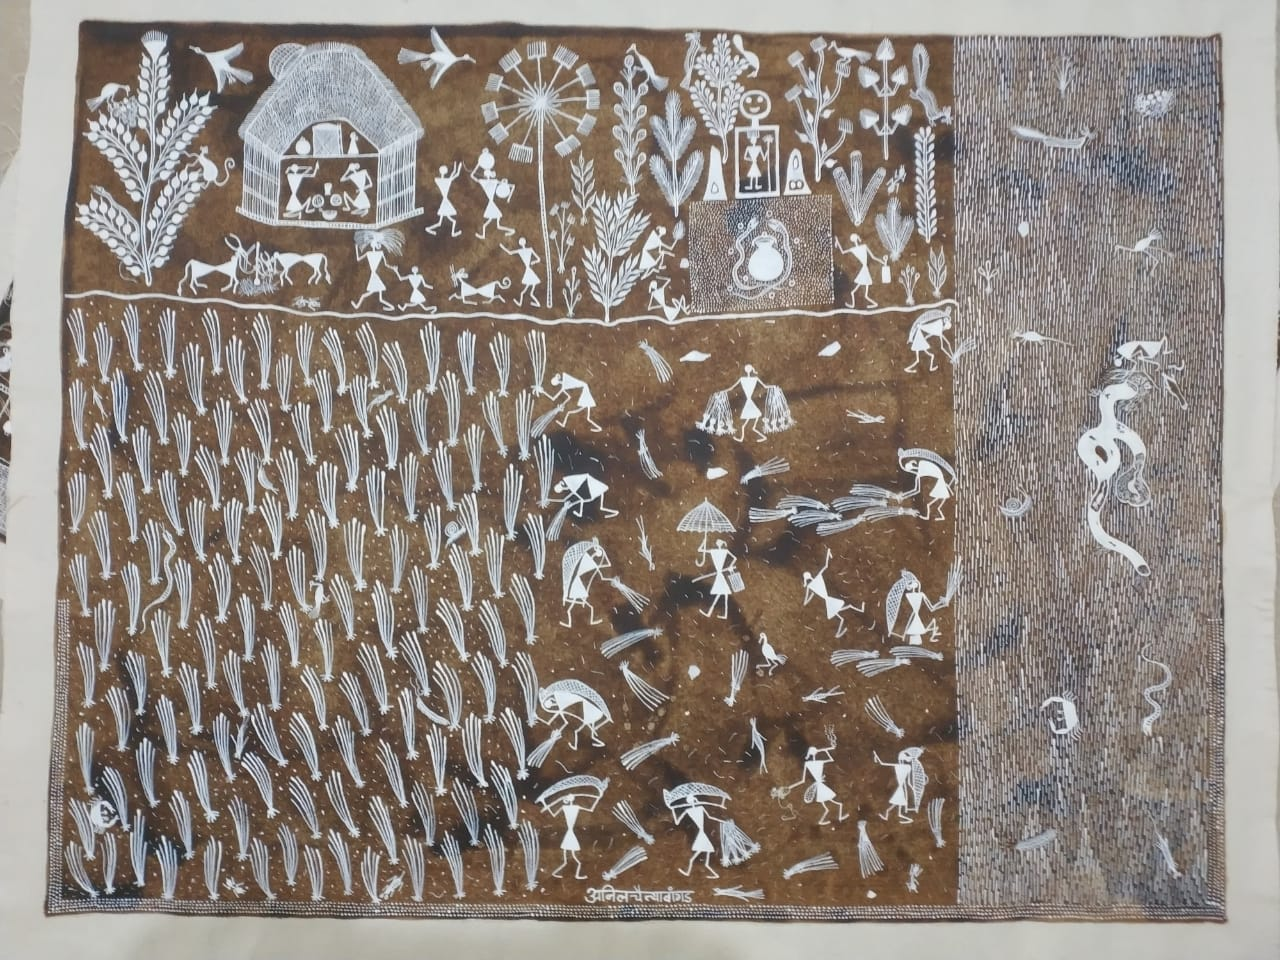 Village Life : Warli painting by Anil Wangad